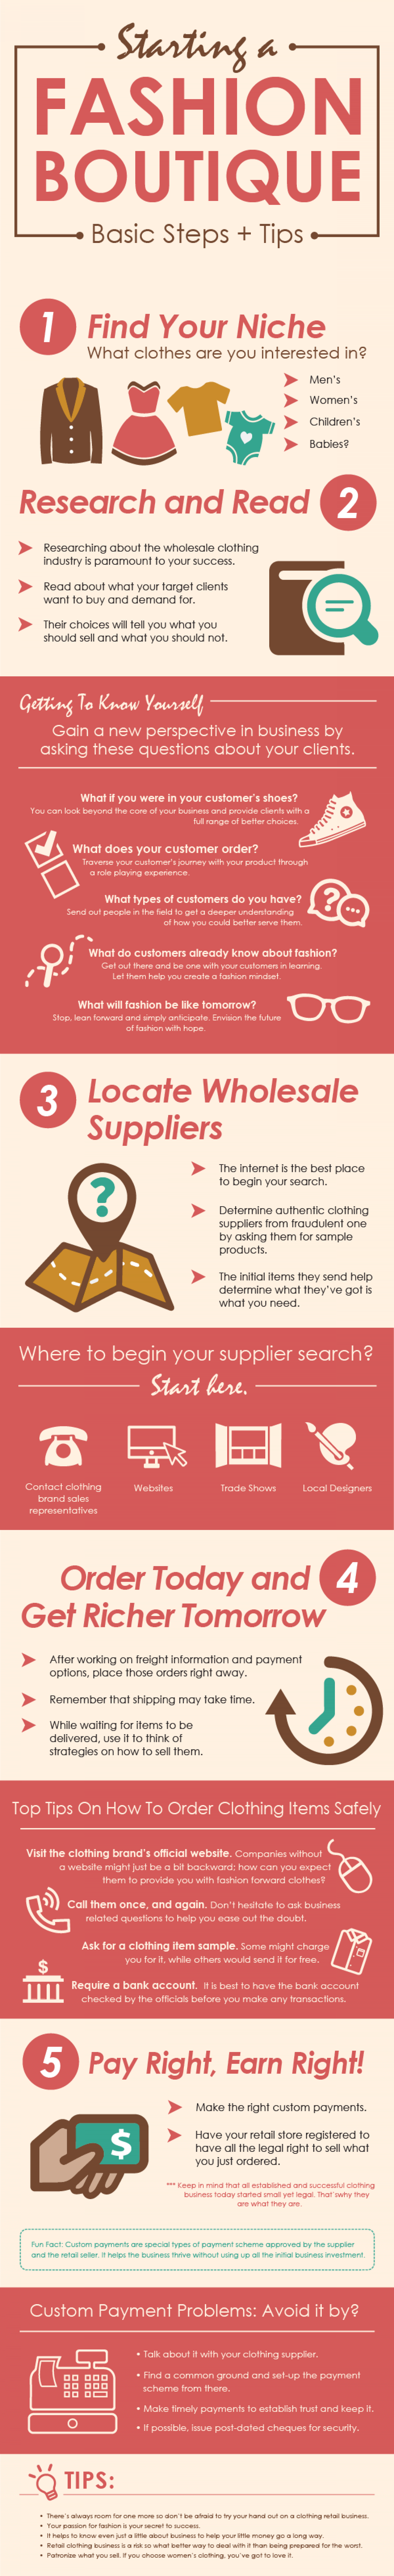 Starting a Fashion Boutique Basic Steps + Tips Infographic